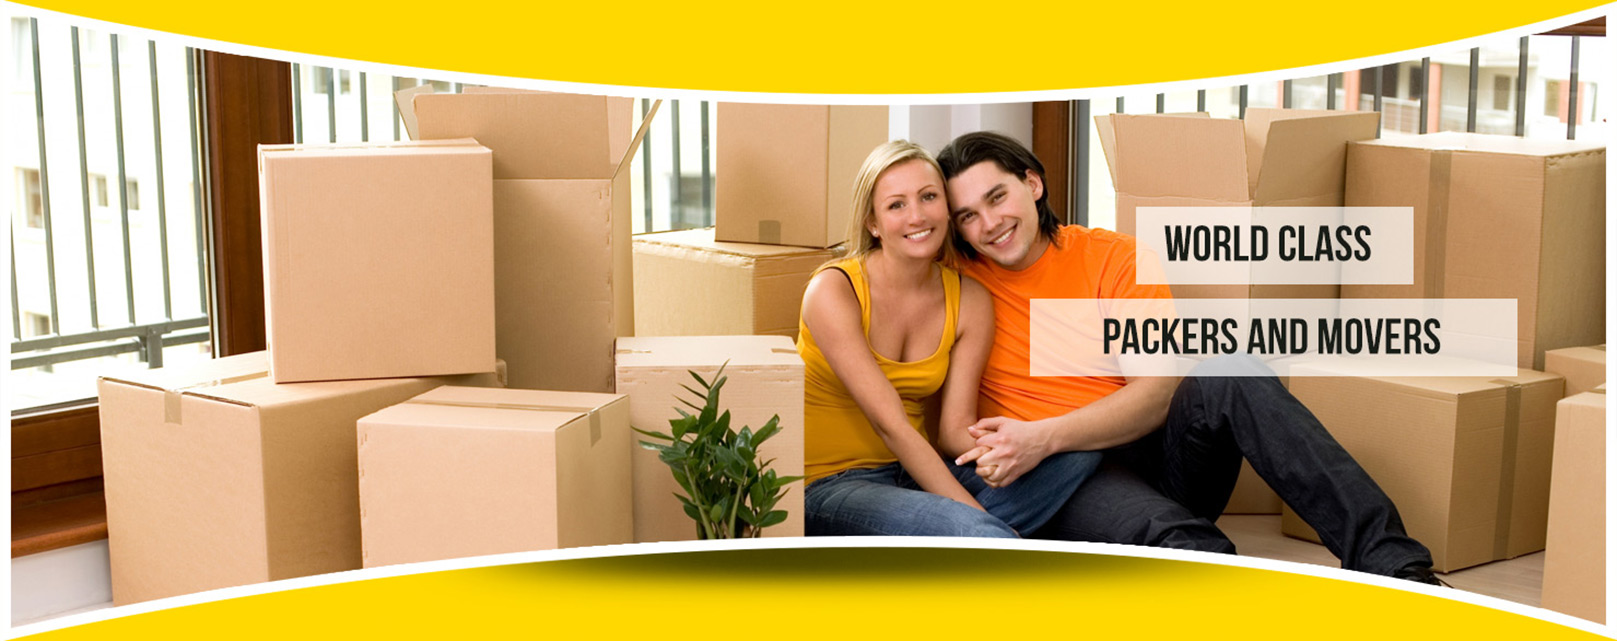 domestic packers and movers india, domestic packers and movers, domestic packers and movers pune, pune movers and packers, domestic packers and movers in pune